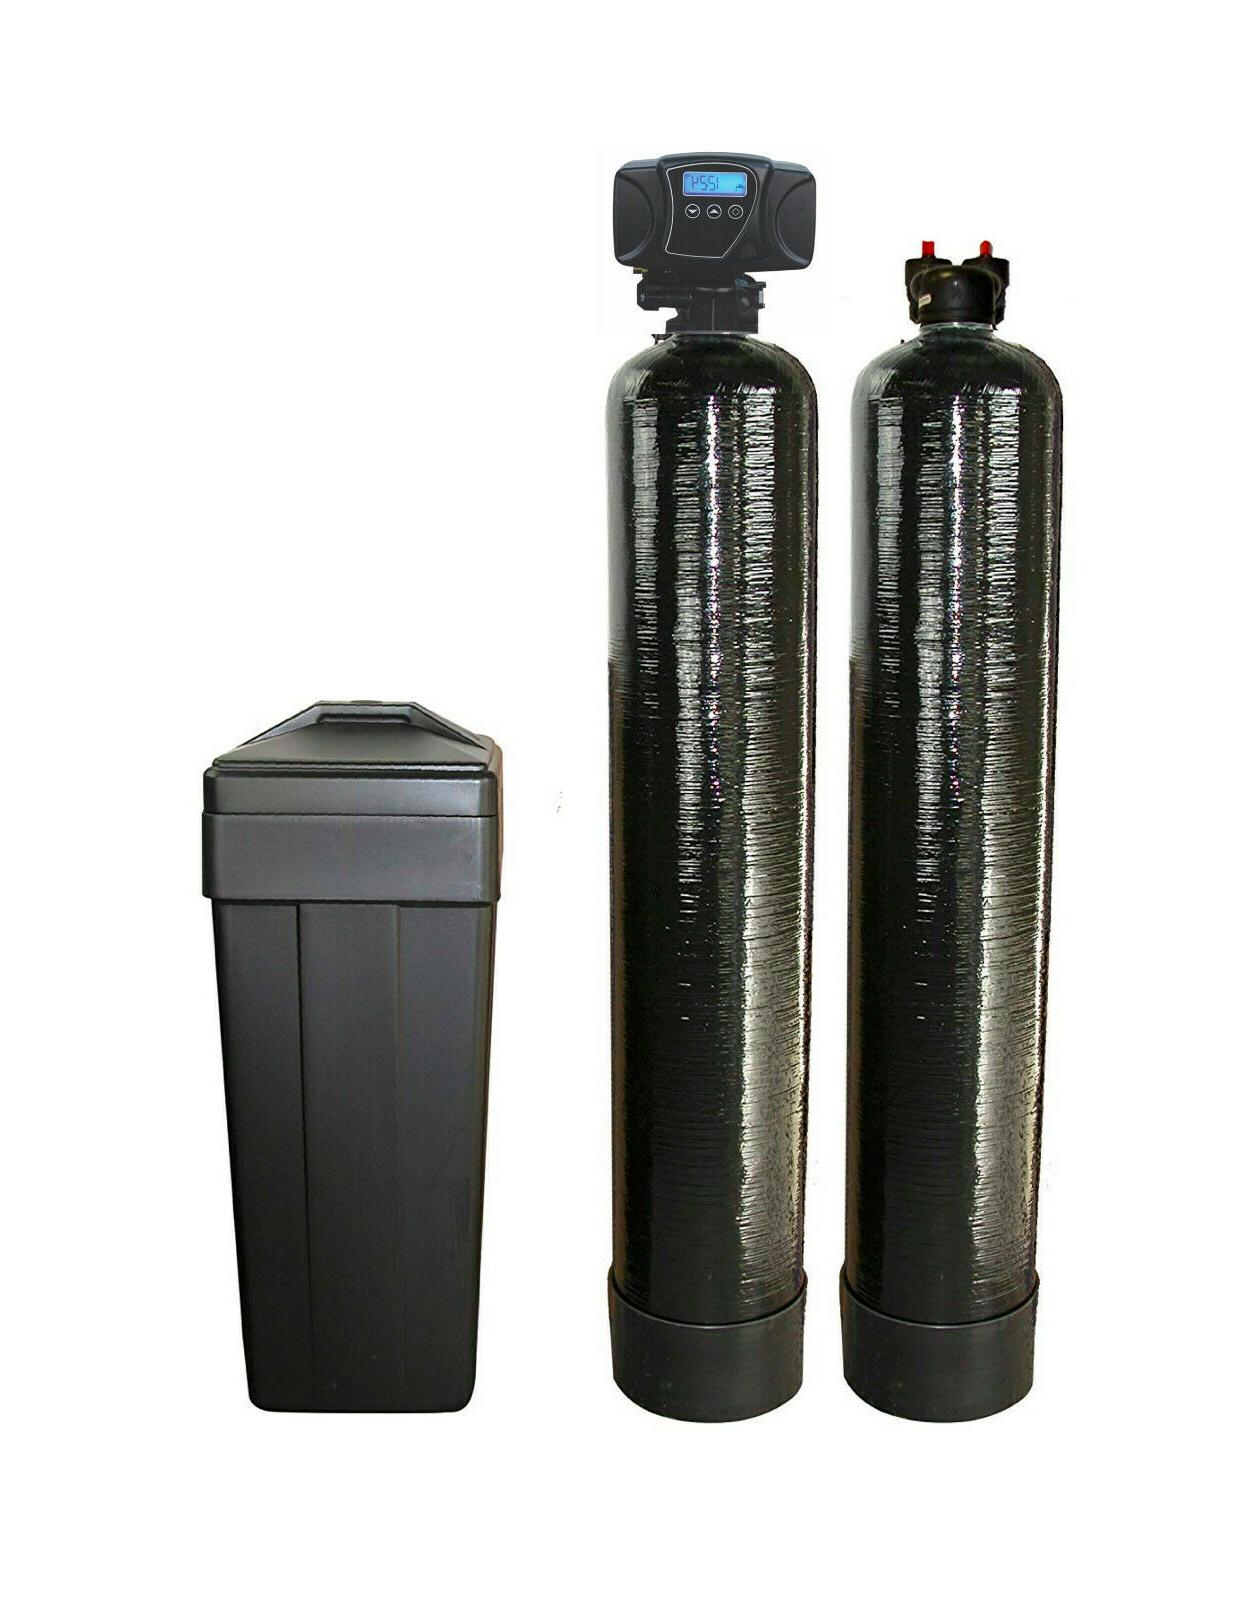 pentair 5600sxt 32 000 water softener